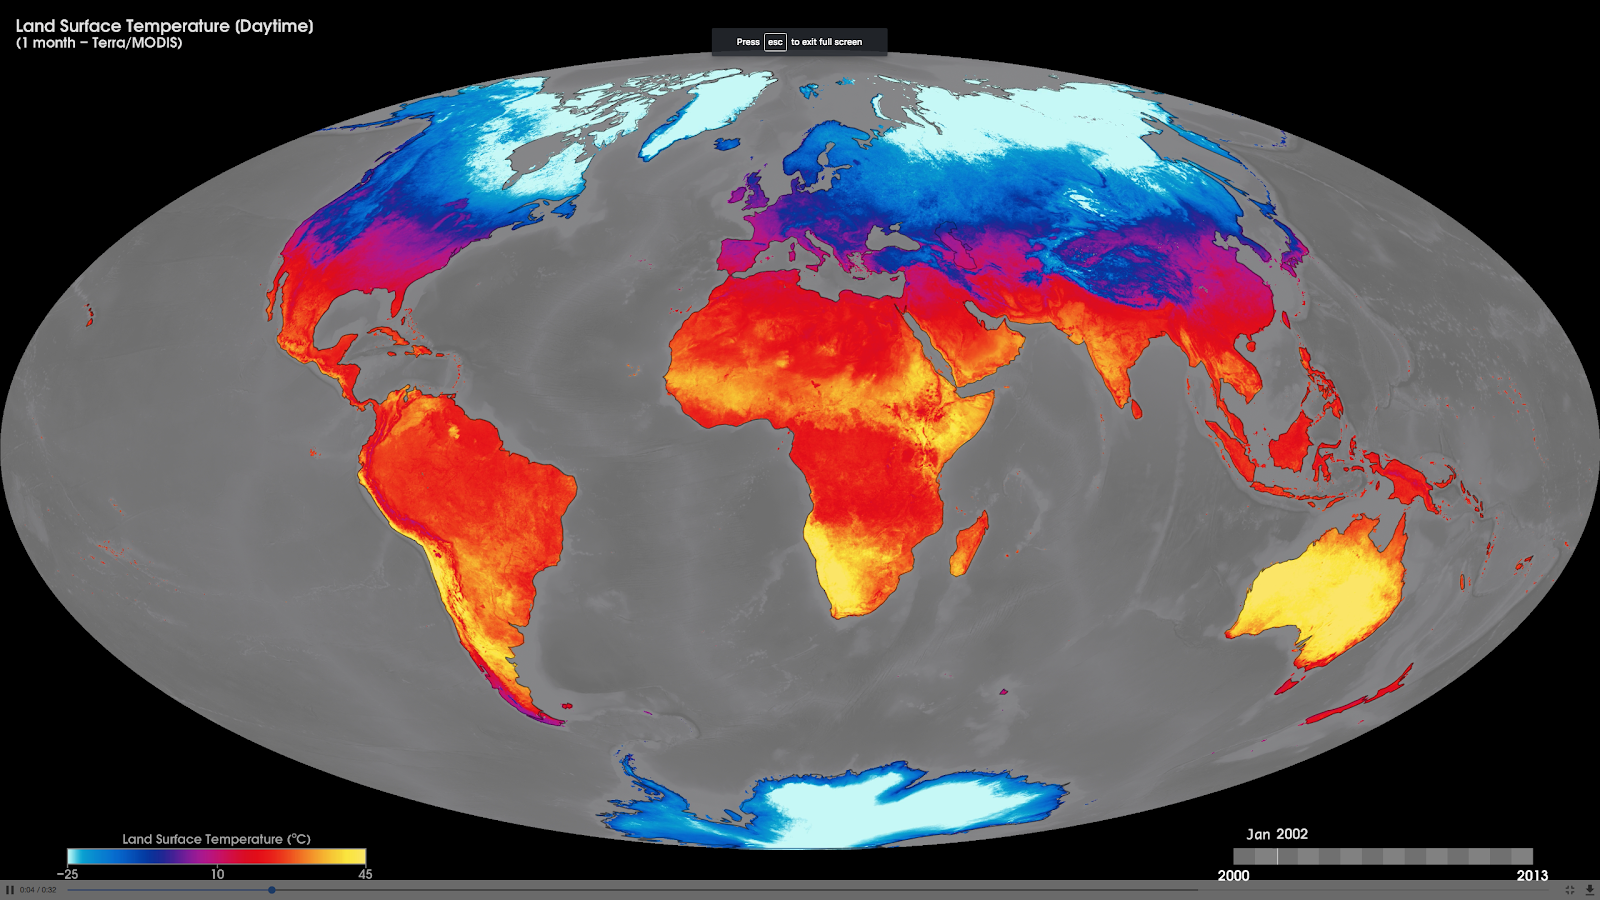 monthly daytime land-surface temperatures